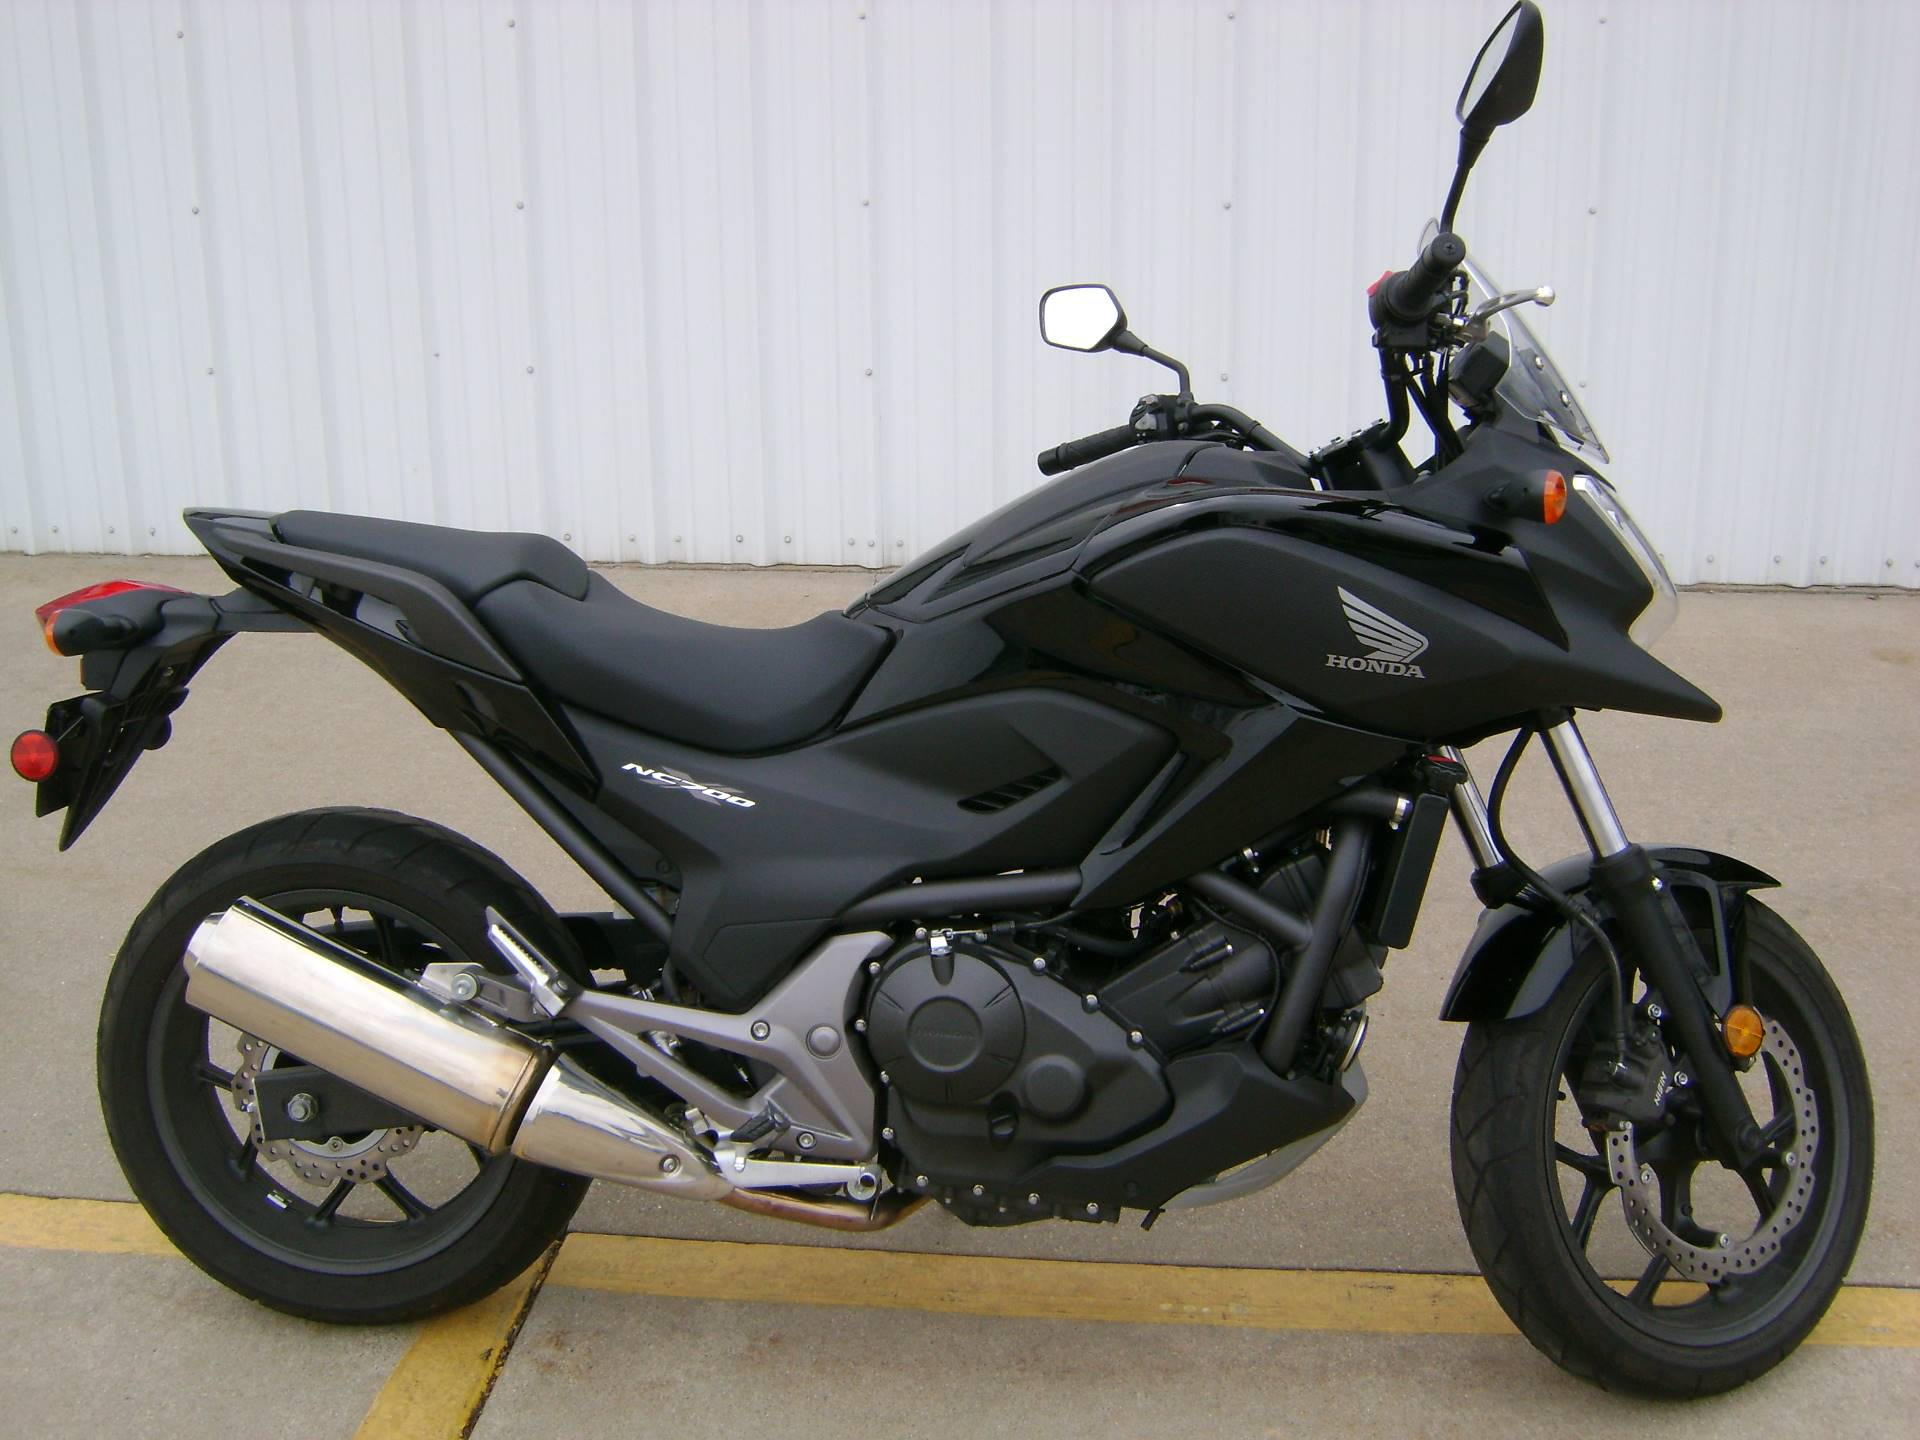 used 2014 honda nc700x motorcycles in freeport il stock number n a. Black Bedroom Furniture Sets. Home Design Ideas